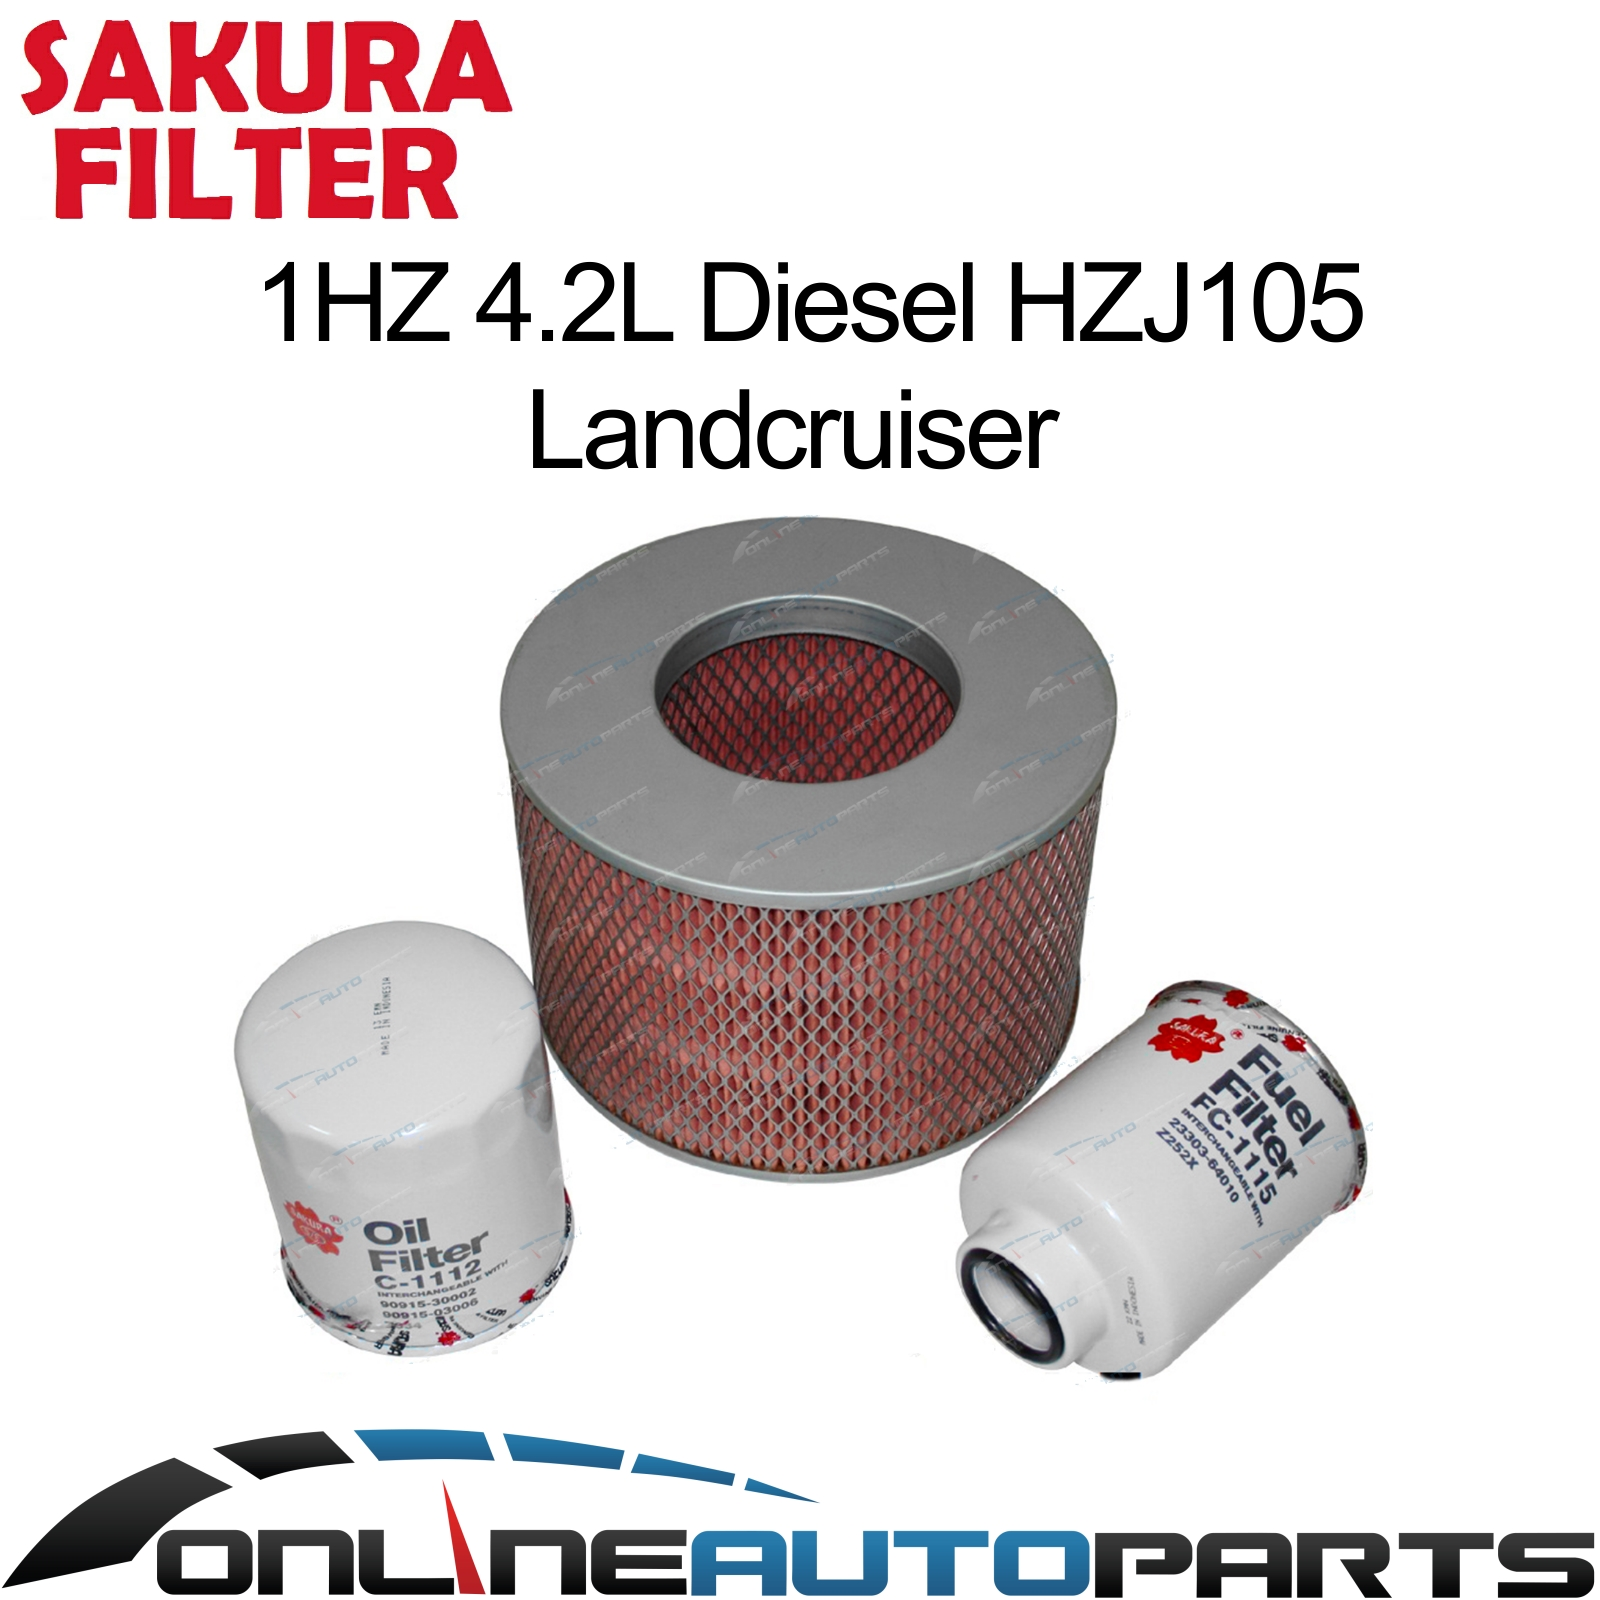 Engine Air Oil Fuel Filter Service Kit Suits Toyota Hzj105 1hz Filters For Diesel Engines 105 Series